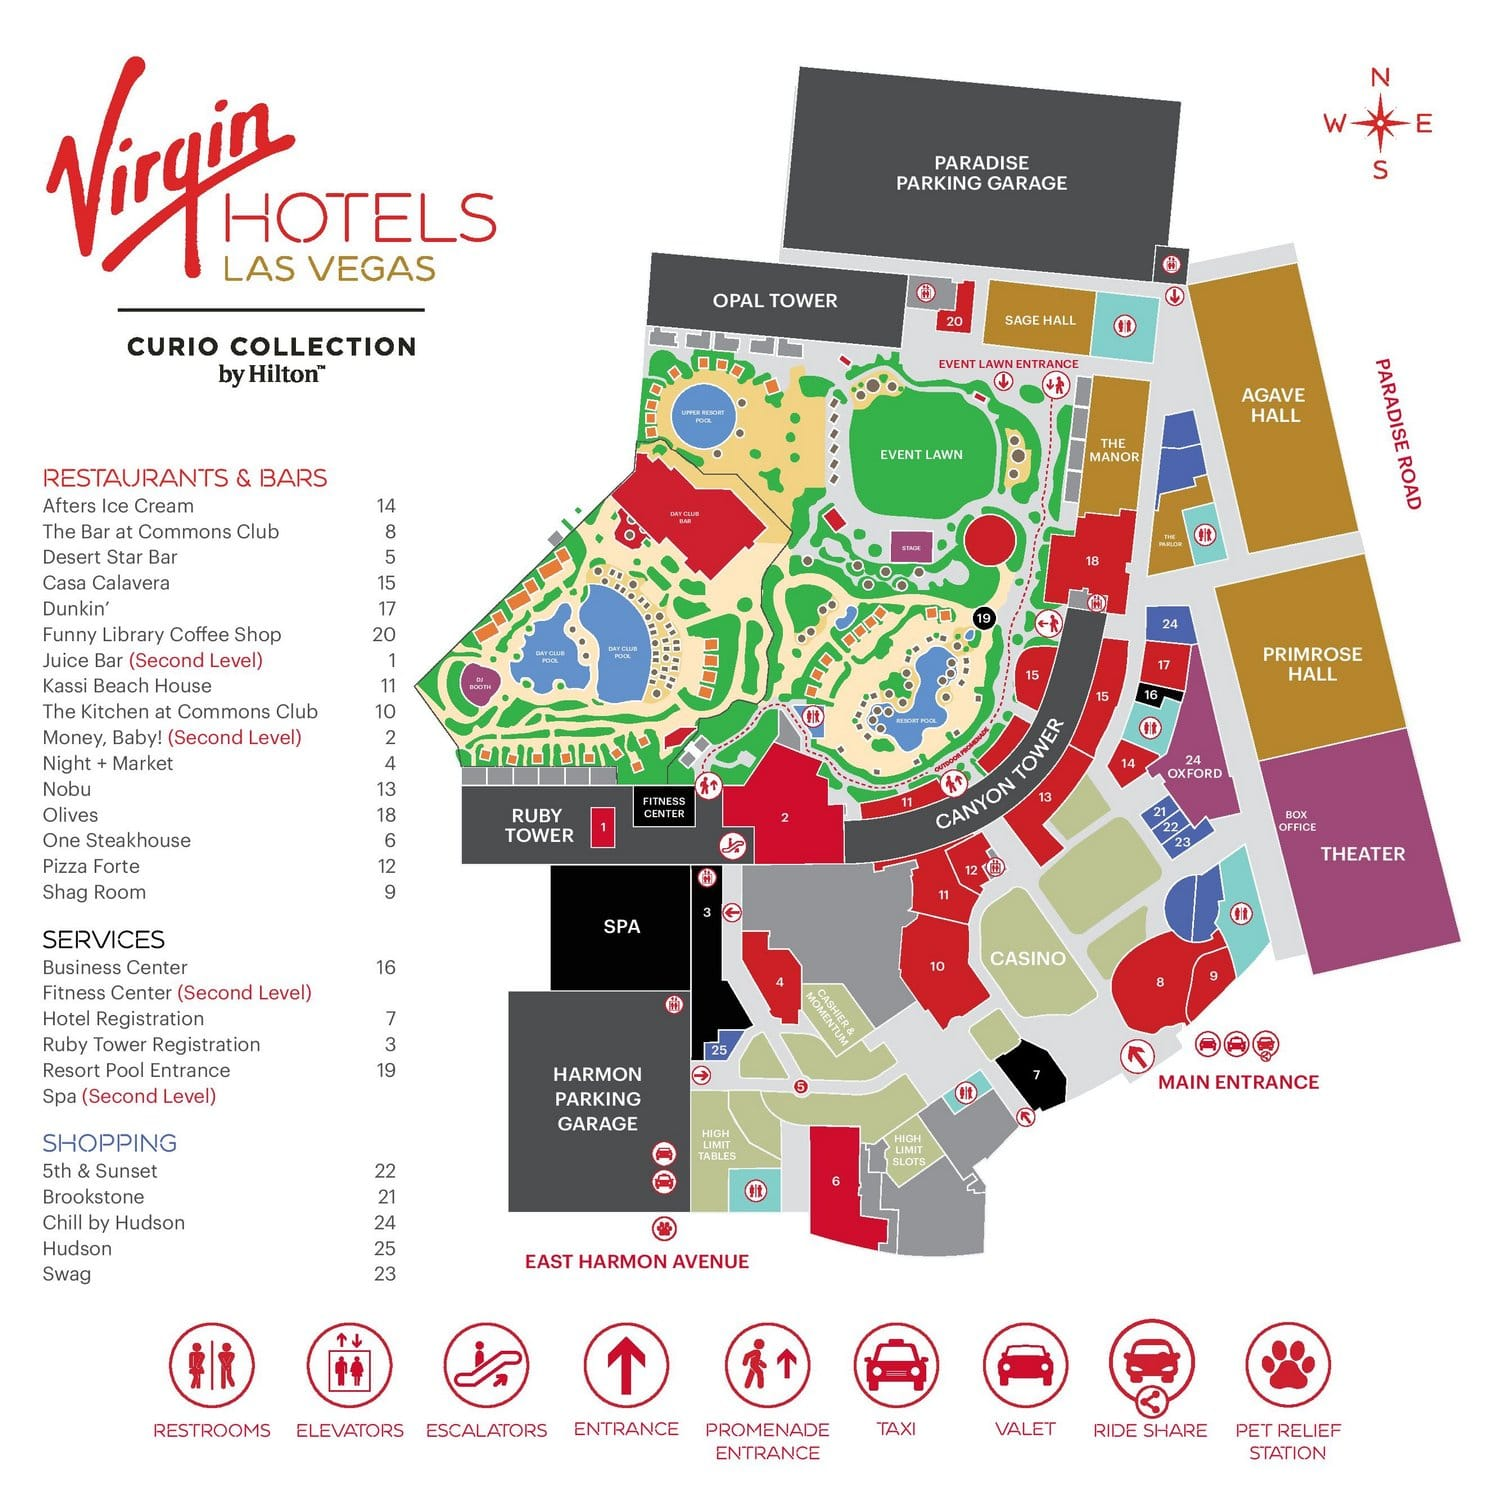 Virgin Hotels Las Vegas Property Map